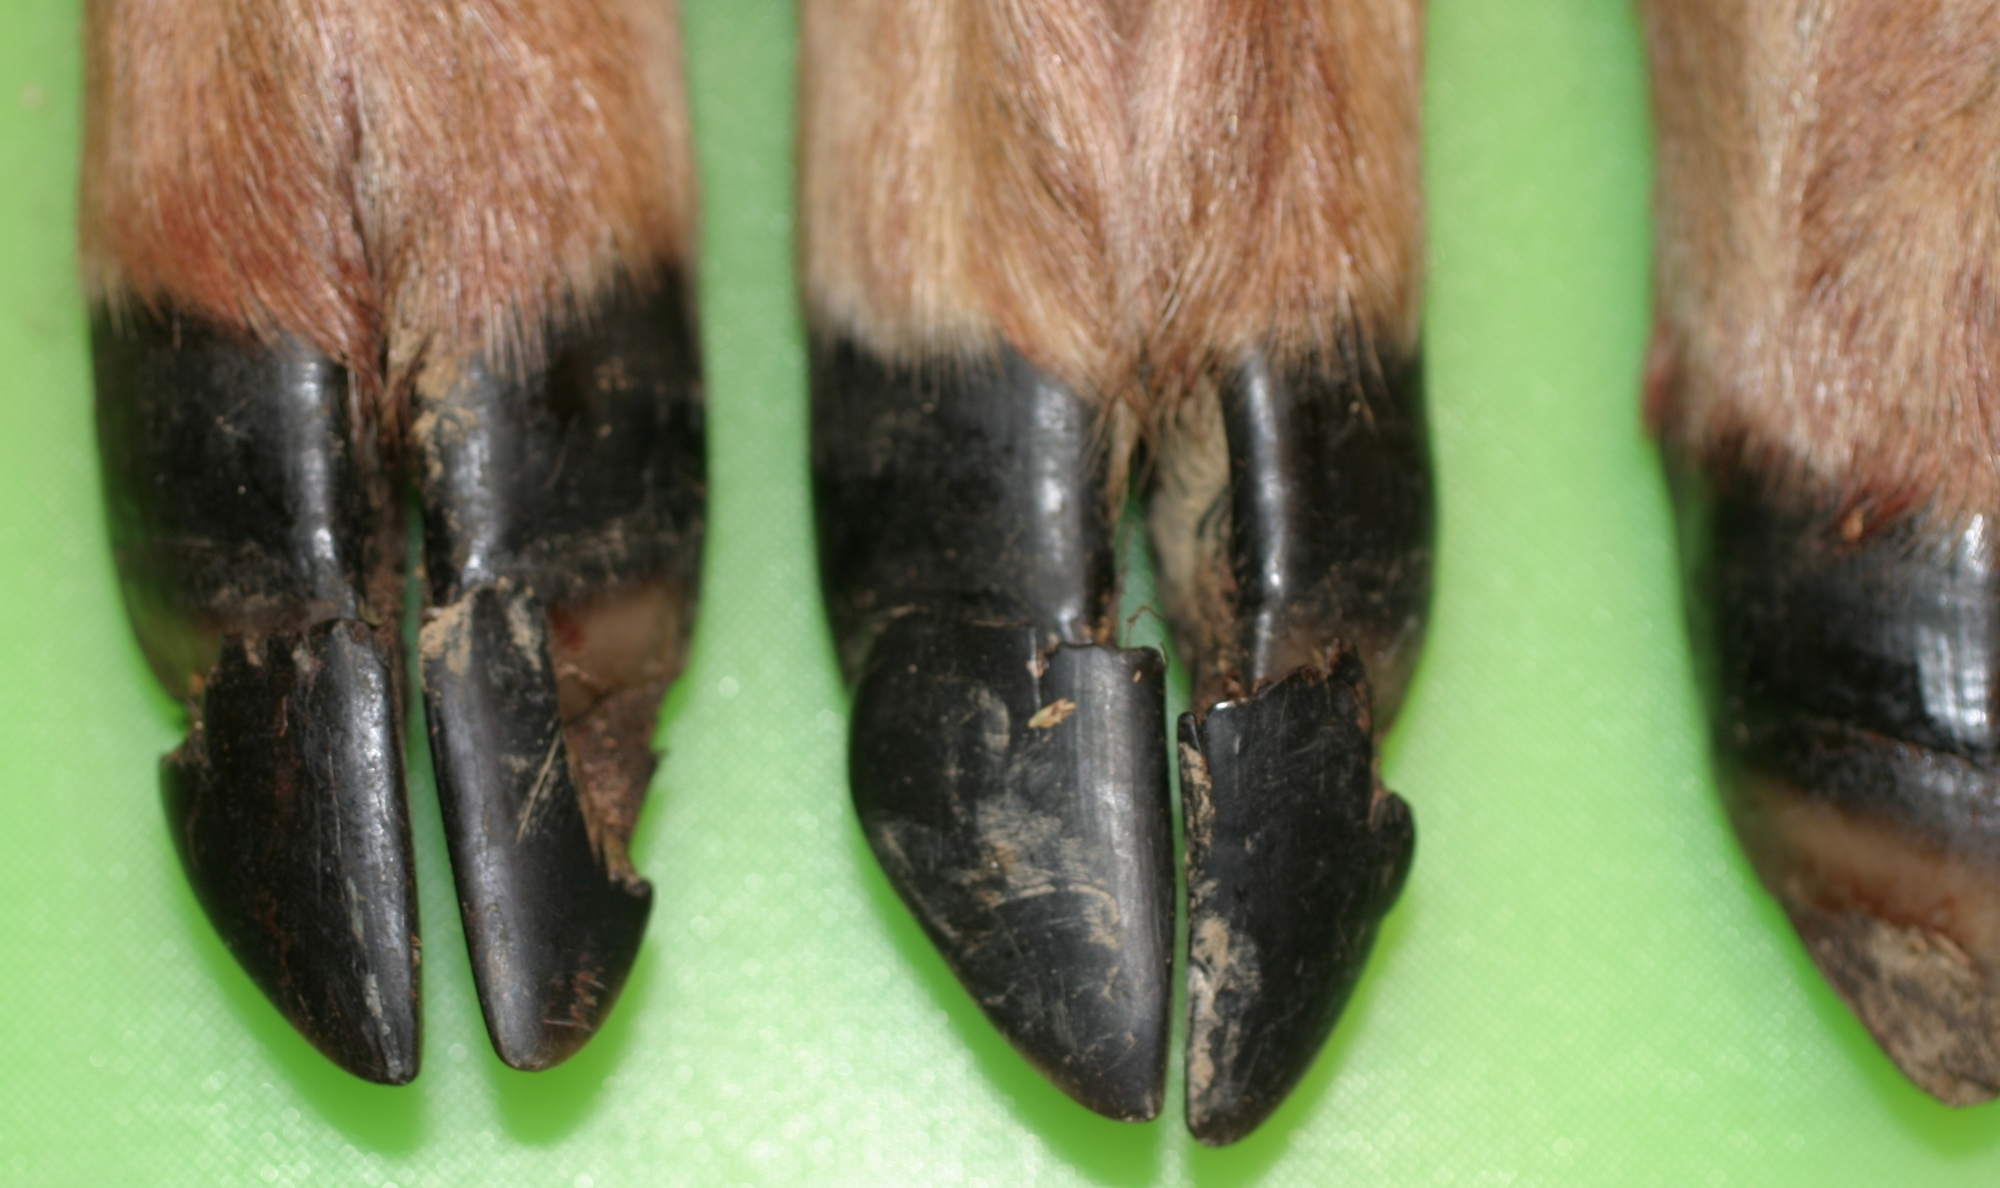 Deer that are exposed to the EHD virus, but do not die from the illness, may show growth interruptions on the hooves and sometimes peeling hoof walls.